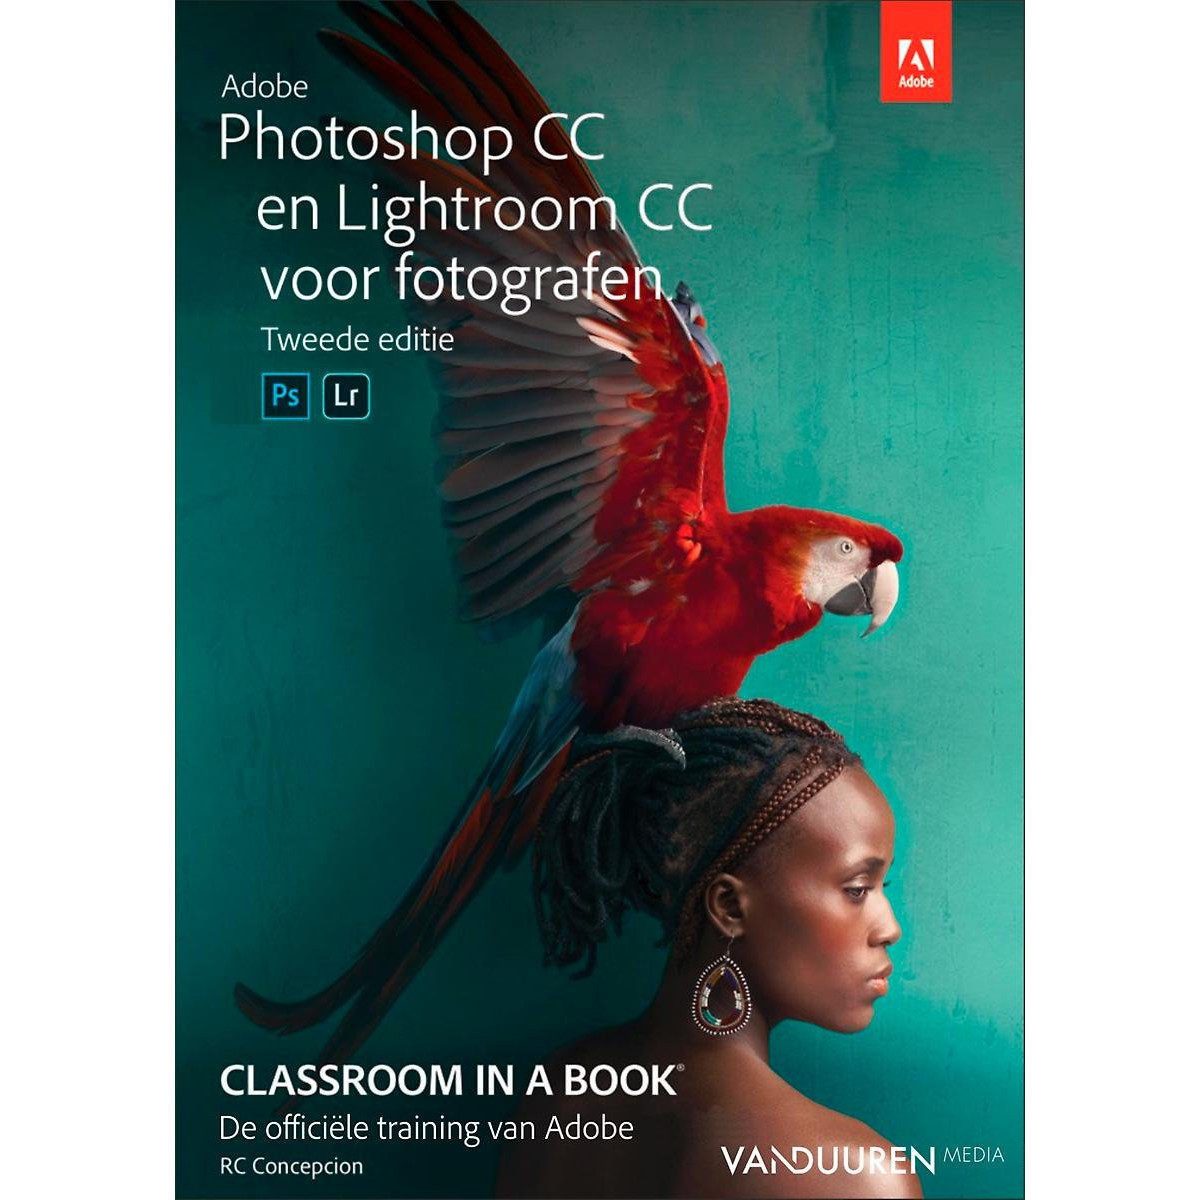 Classroom in a Book: Adobe Photoshop CC en Lightroom CC voor fotografen, 2e editie - Rob de Winter